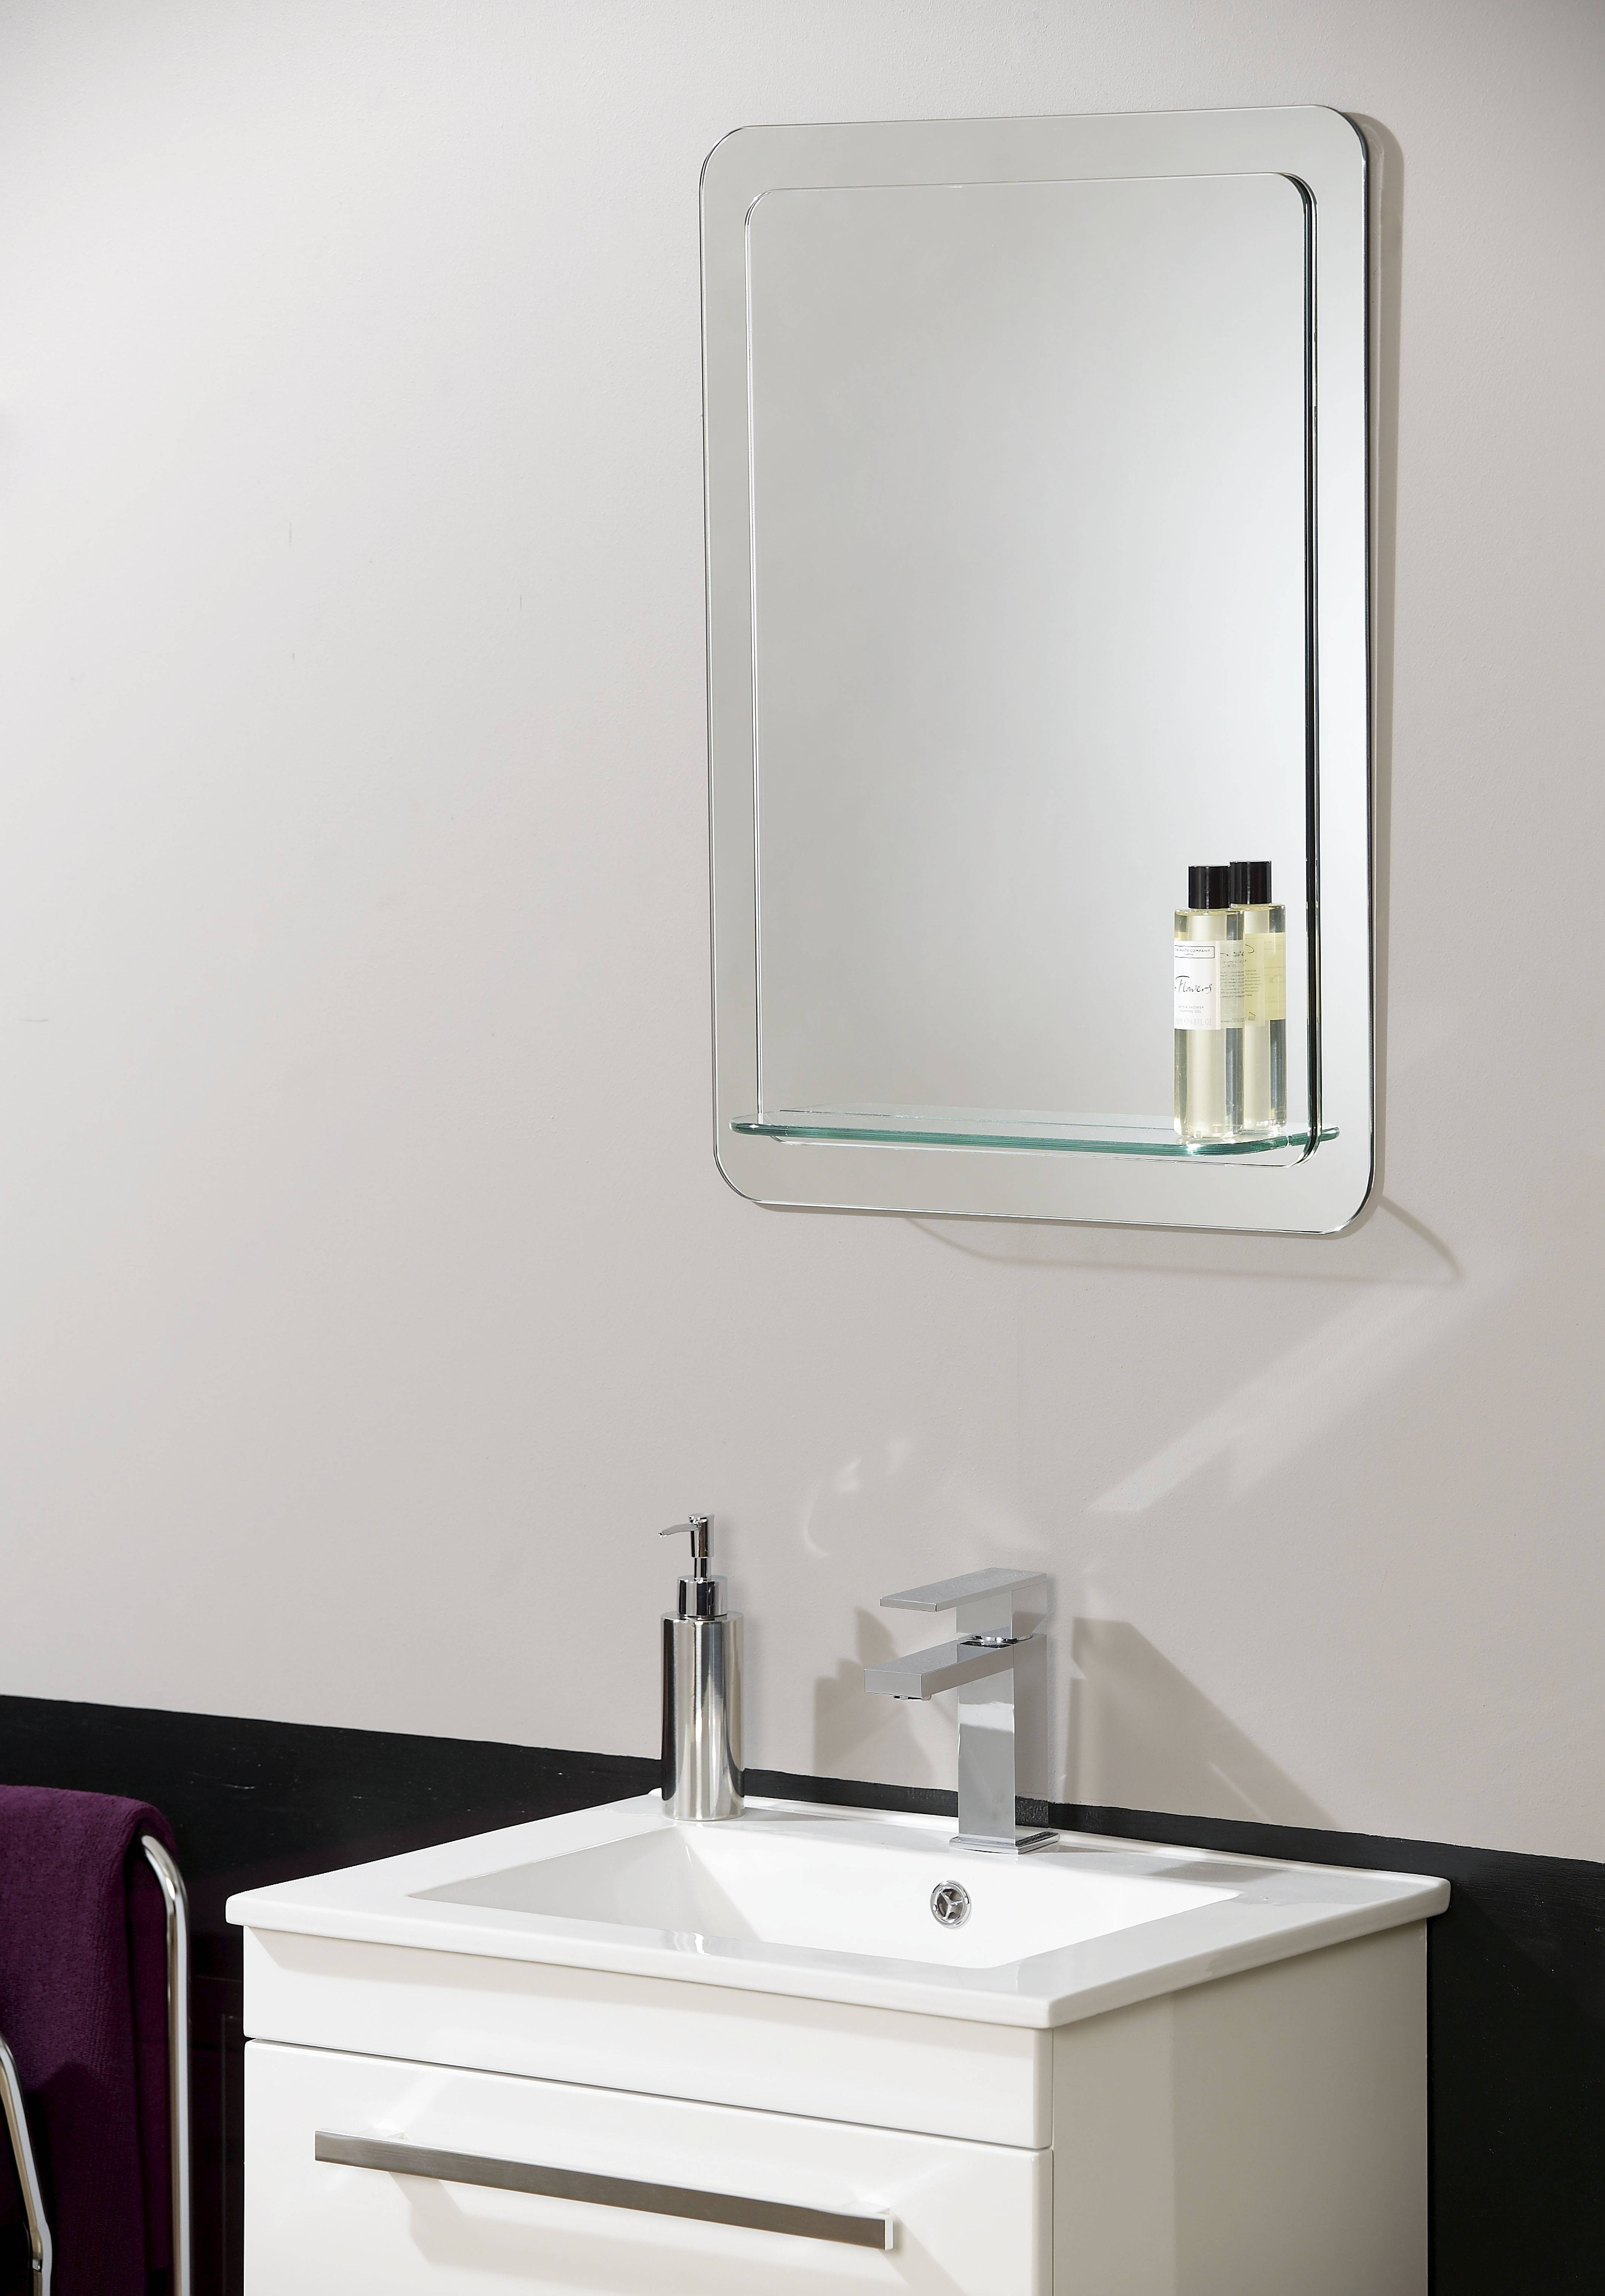 Large Bathroom Mirror Inspirational Makairavp Com Impactful Extra within Wrought Iron Bathroom Mirrors (Image 11 of 15)